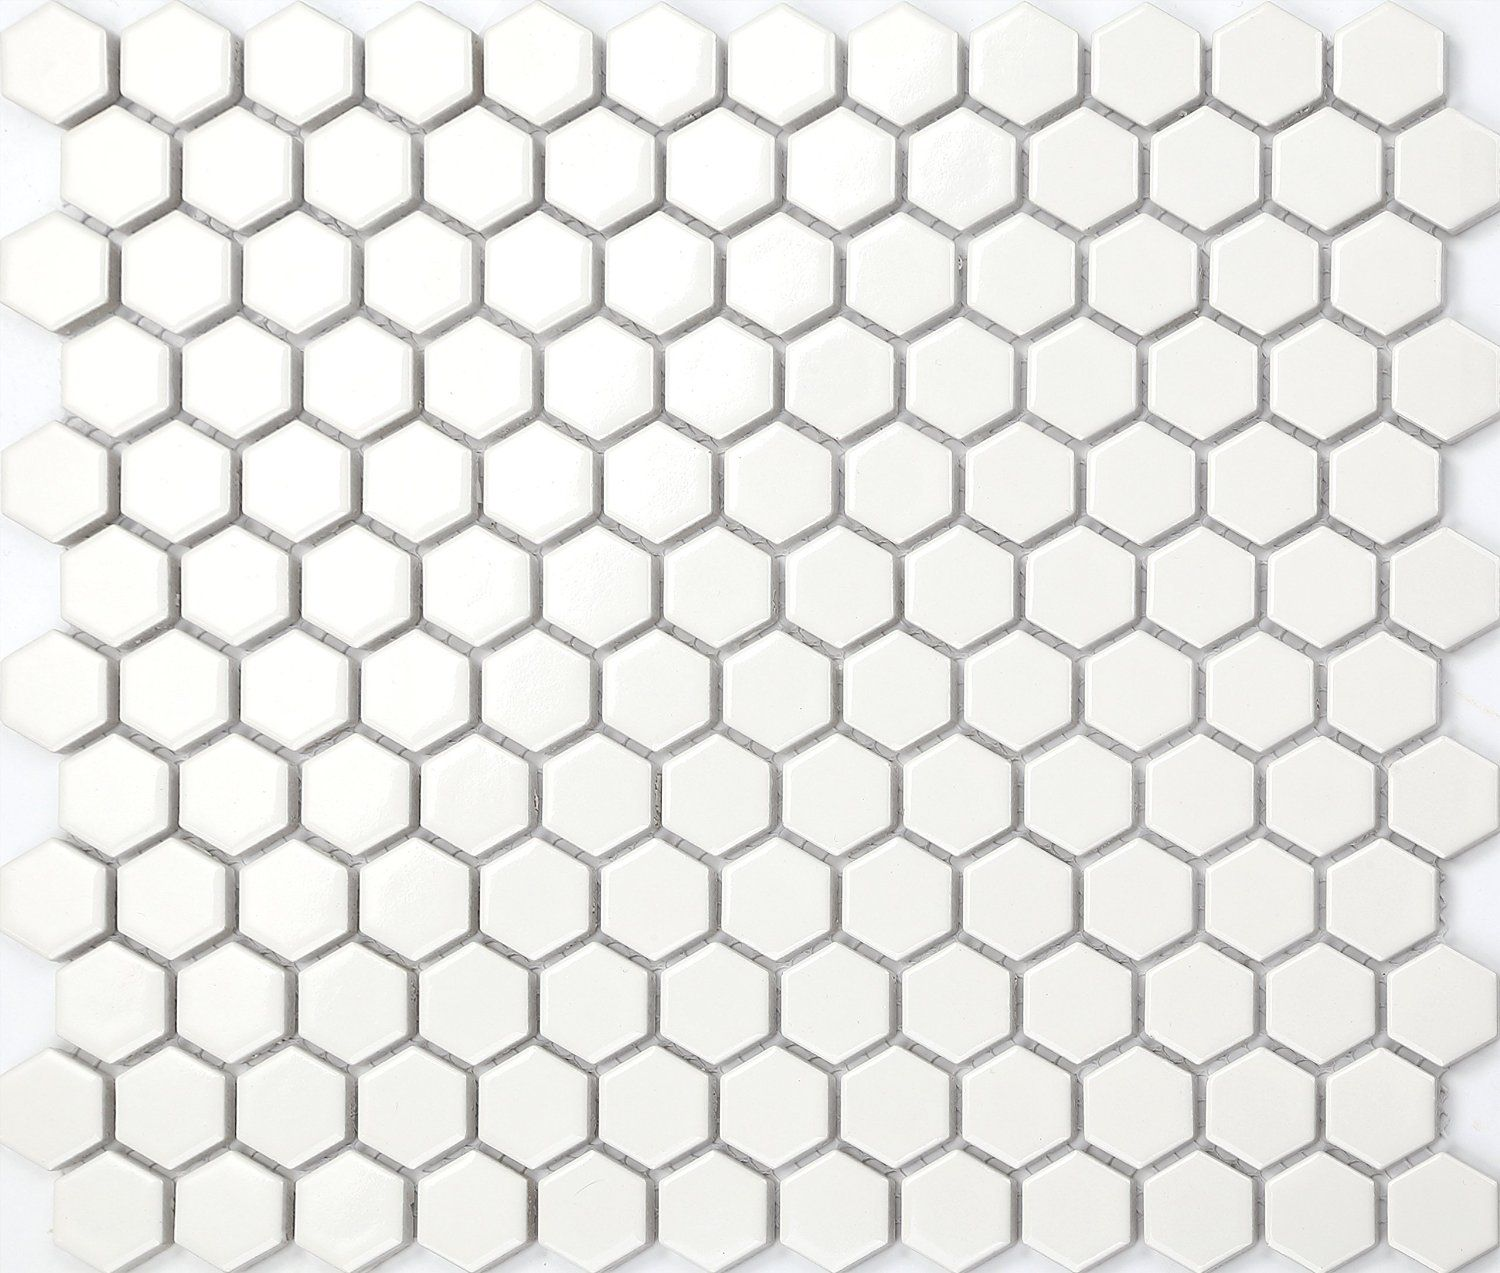 Mosaik Fliesen Zement Hexagon Struktur Keramik Mosaik Fliesen Matte In Weiß Mt0089